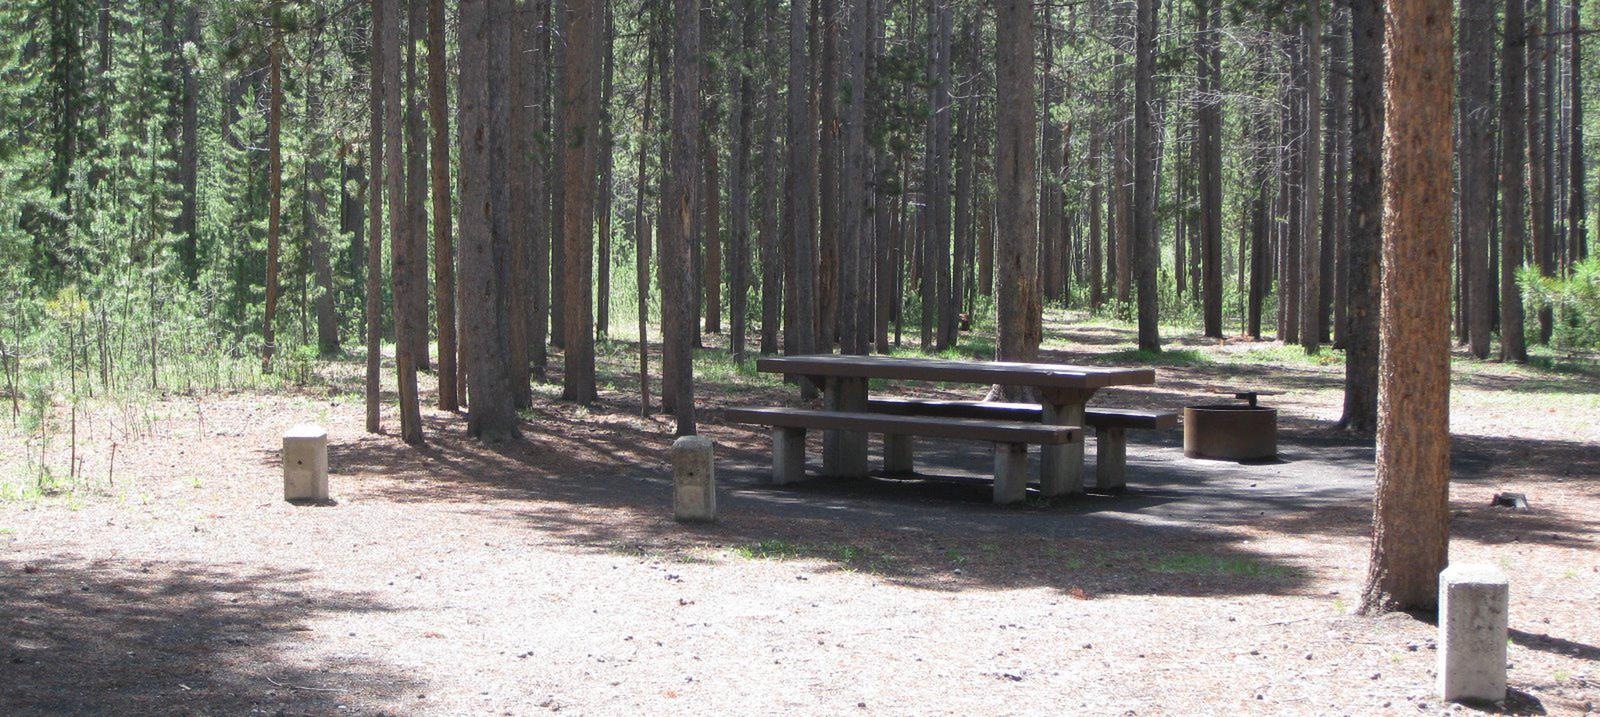 Site C15, surrounded by pine trees, picnic table & fire ringSite C15